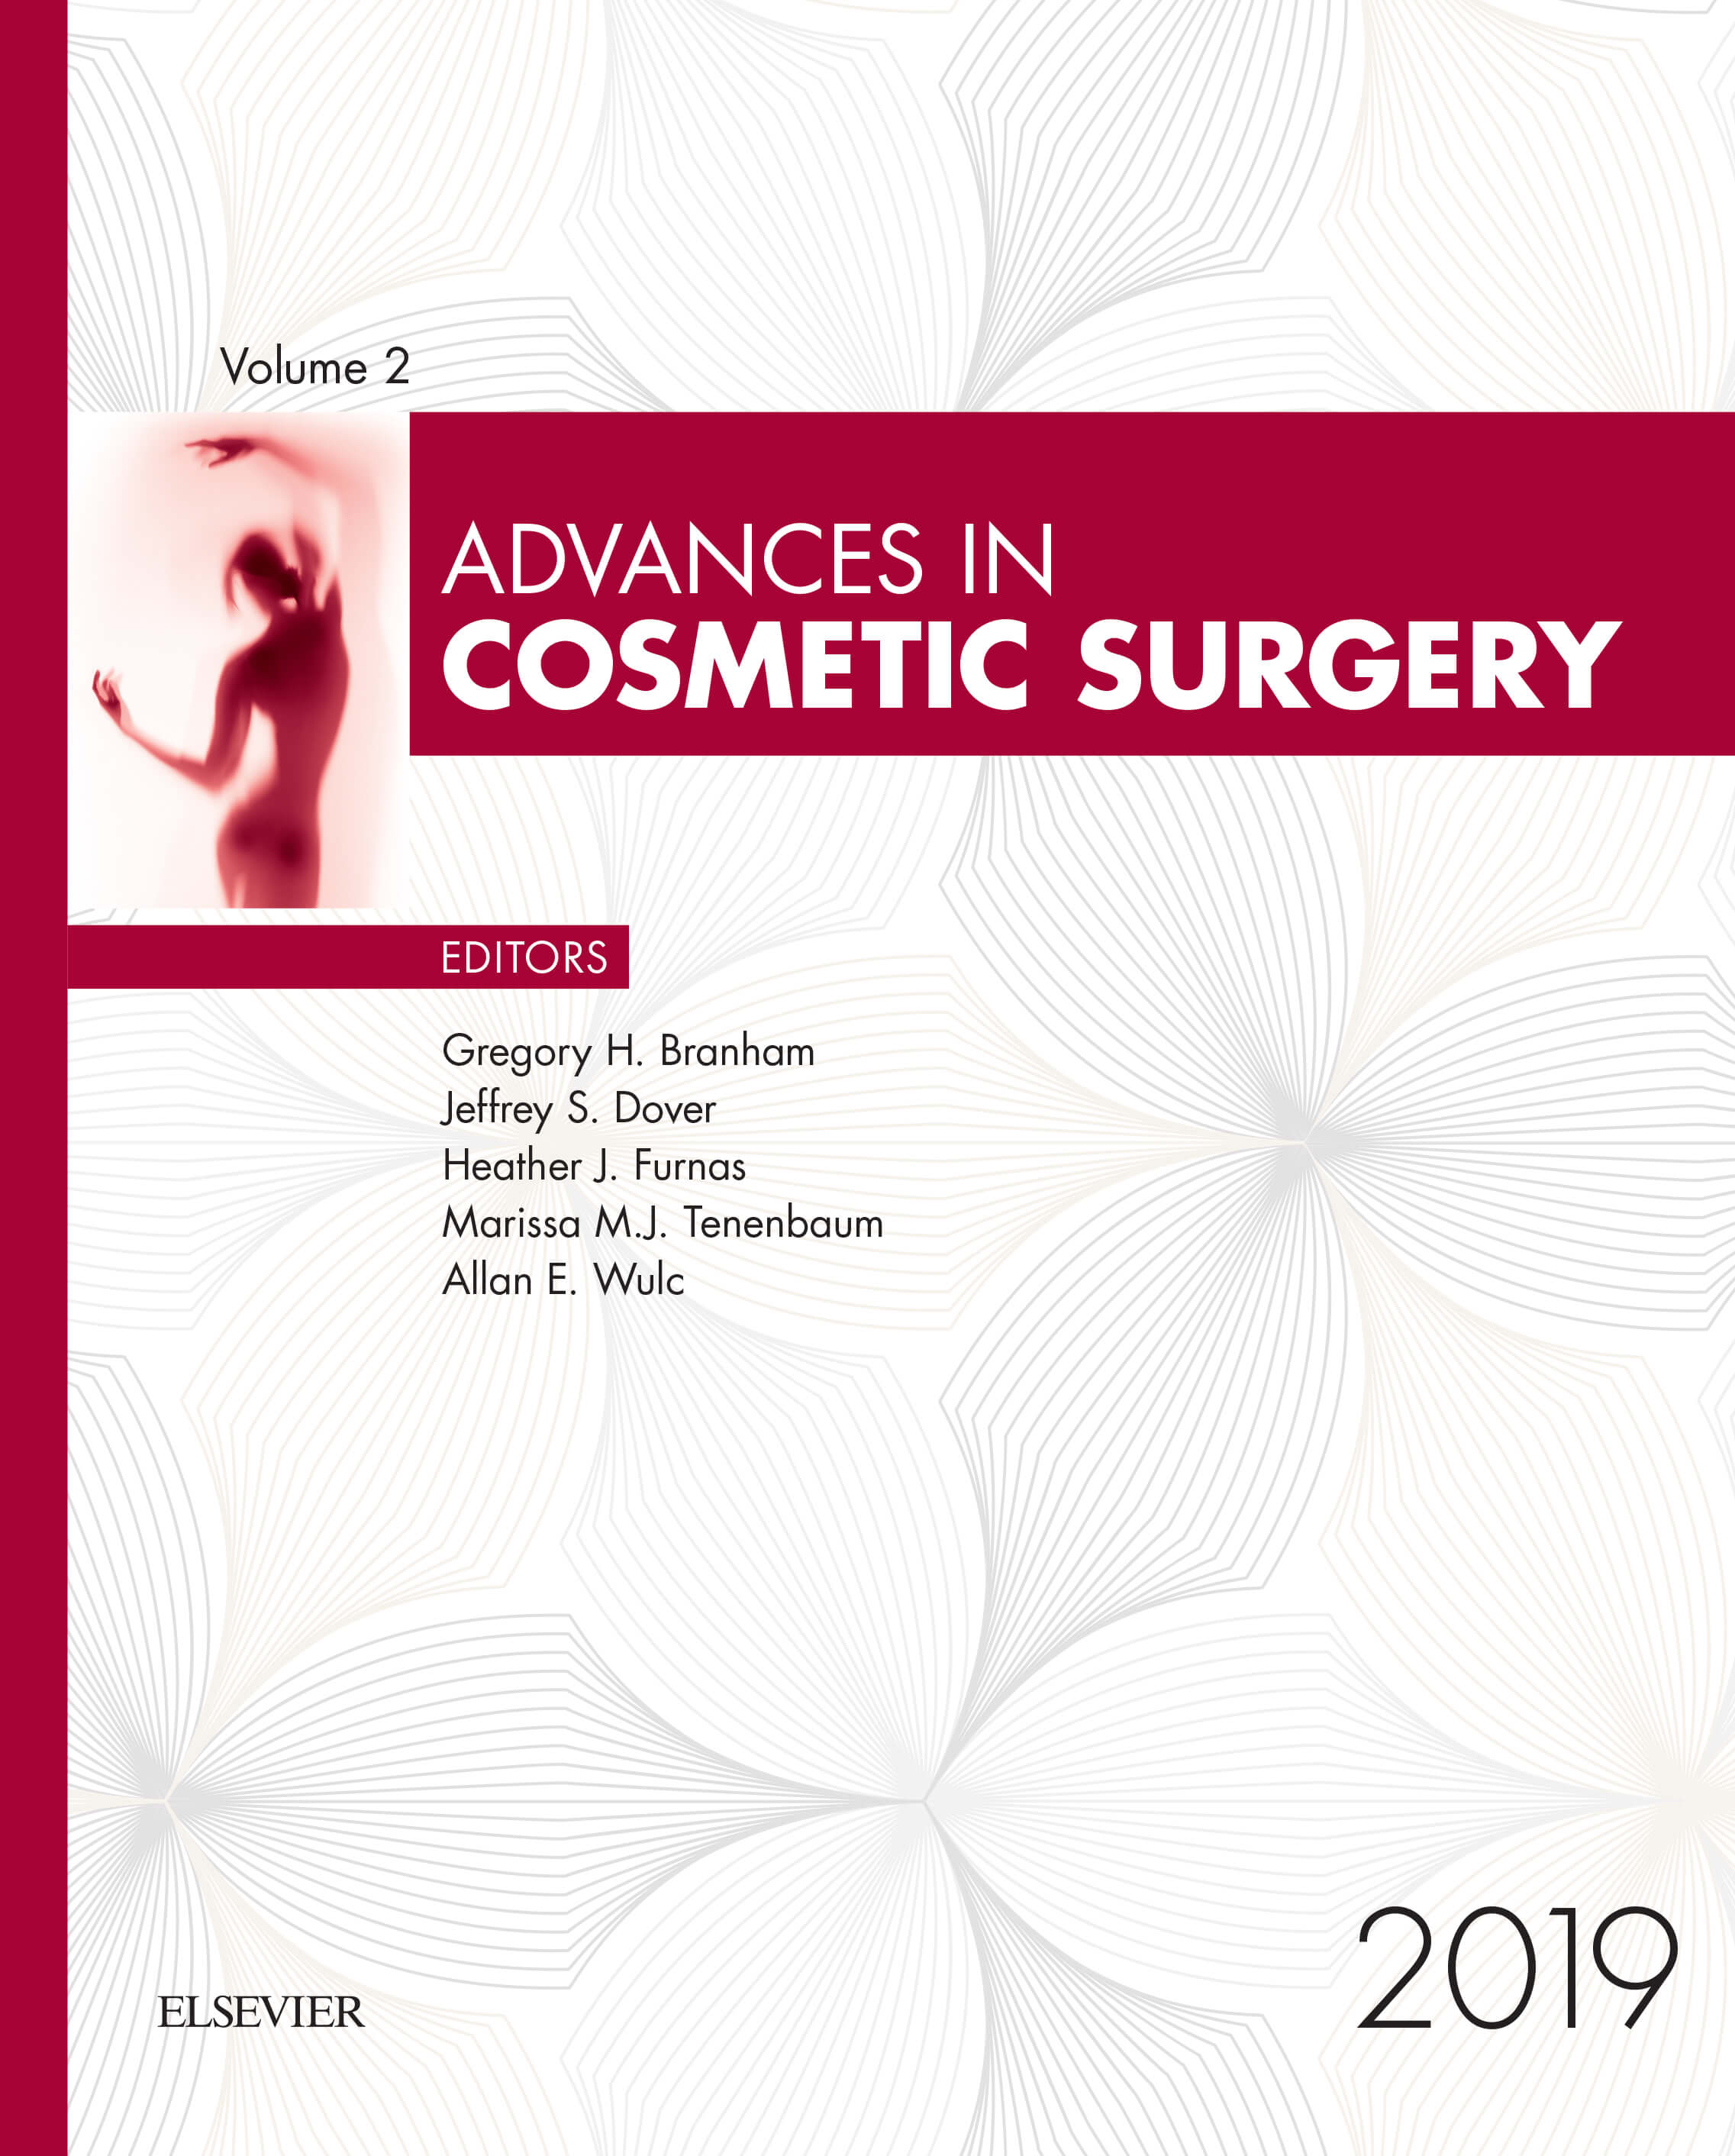 Front cover of Advances in Aesthetic Surgery, volume 2 book